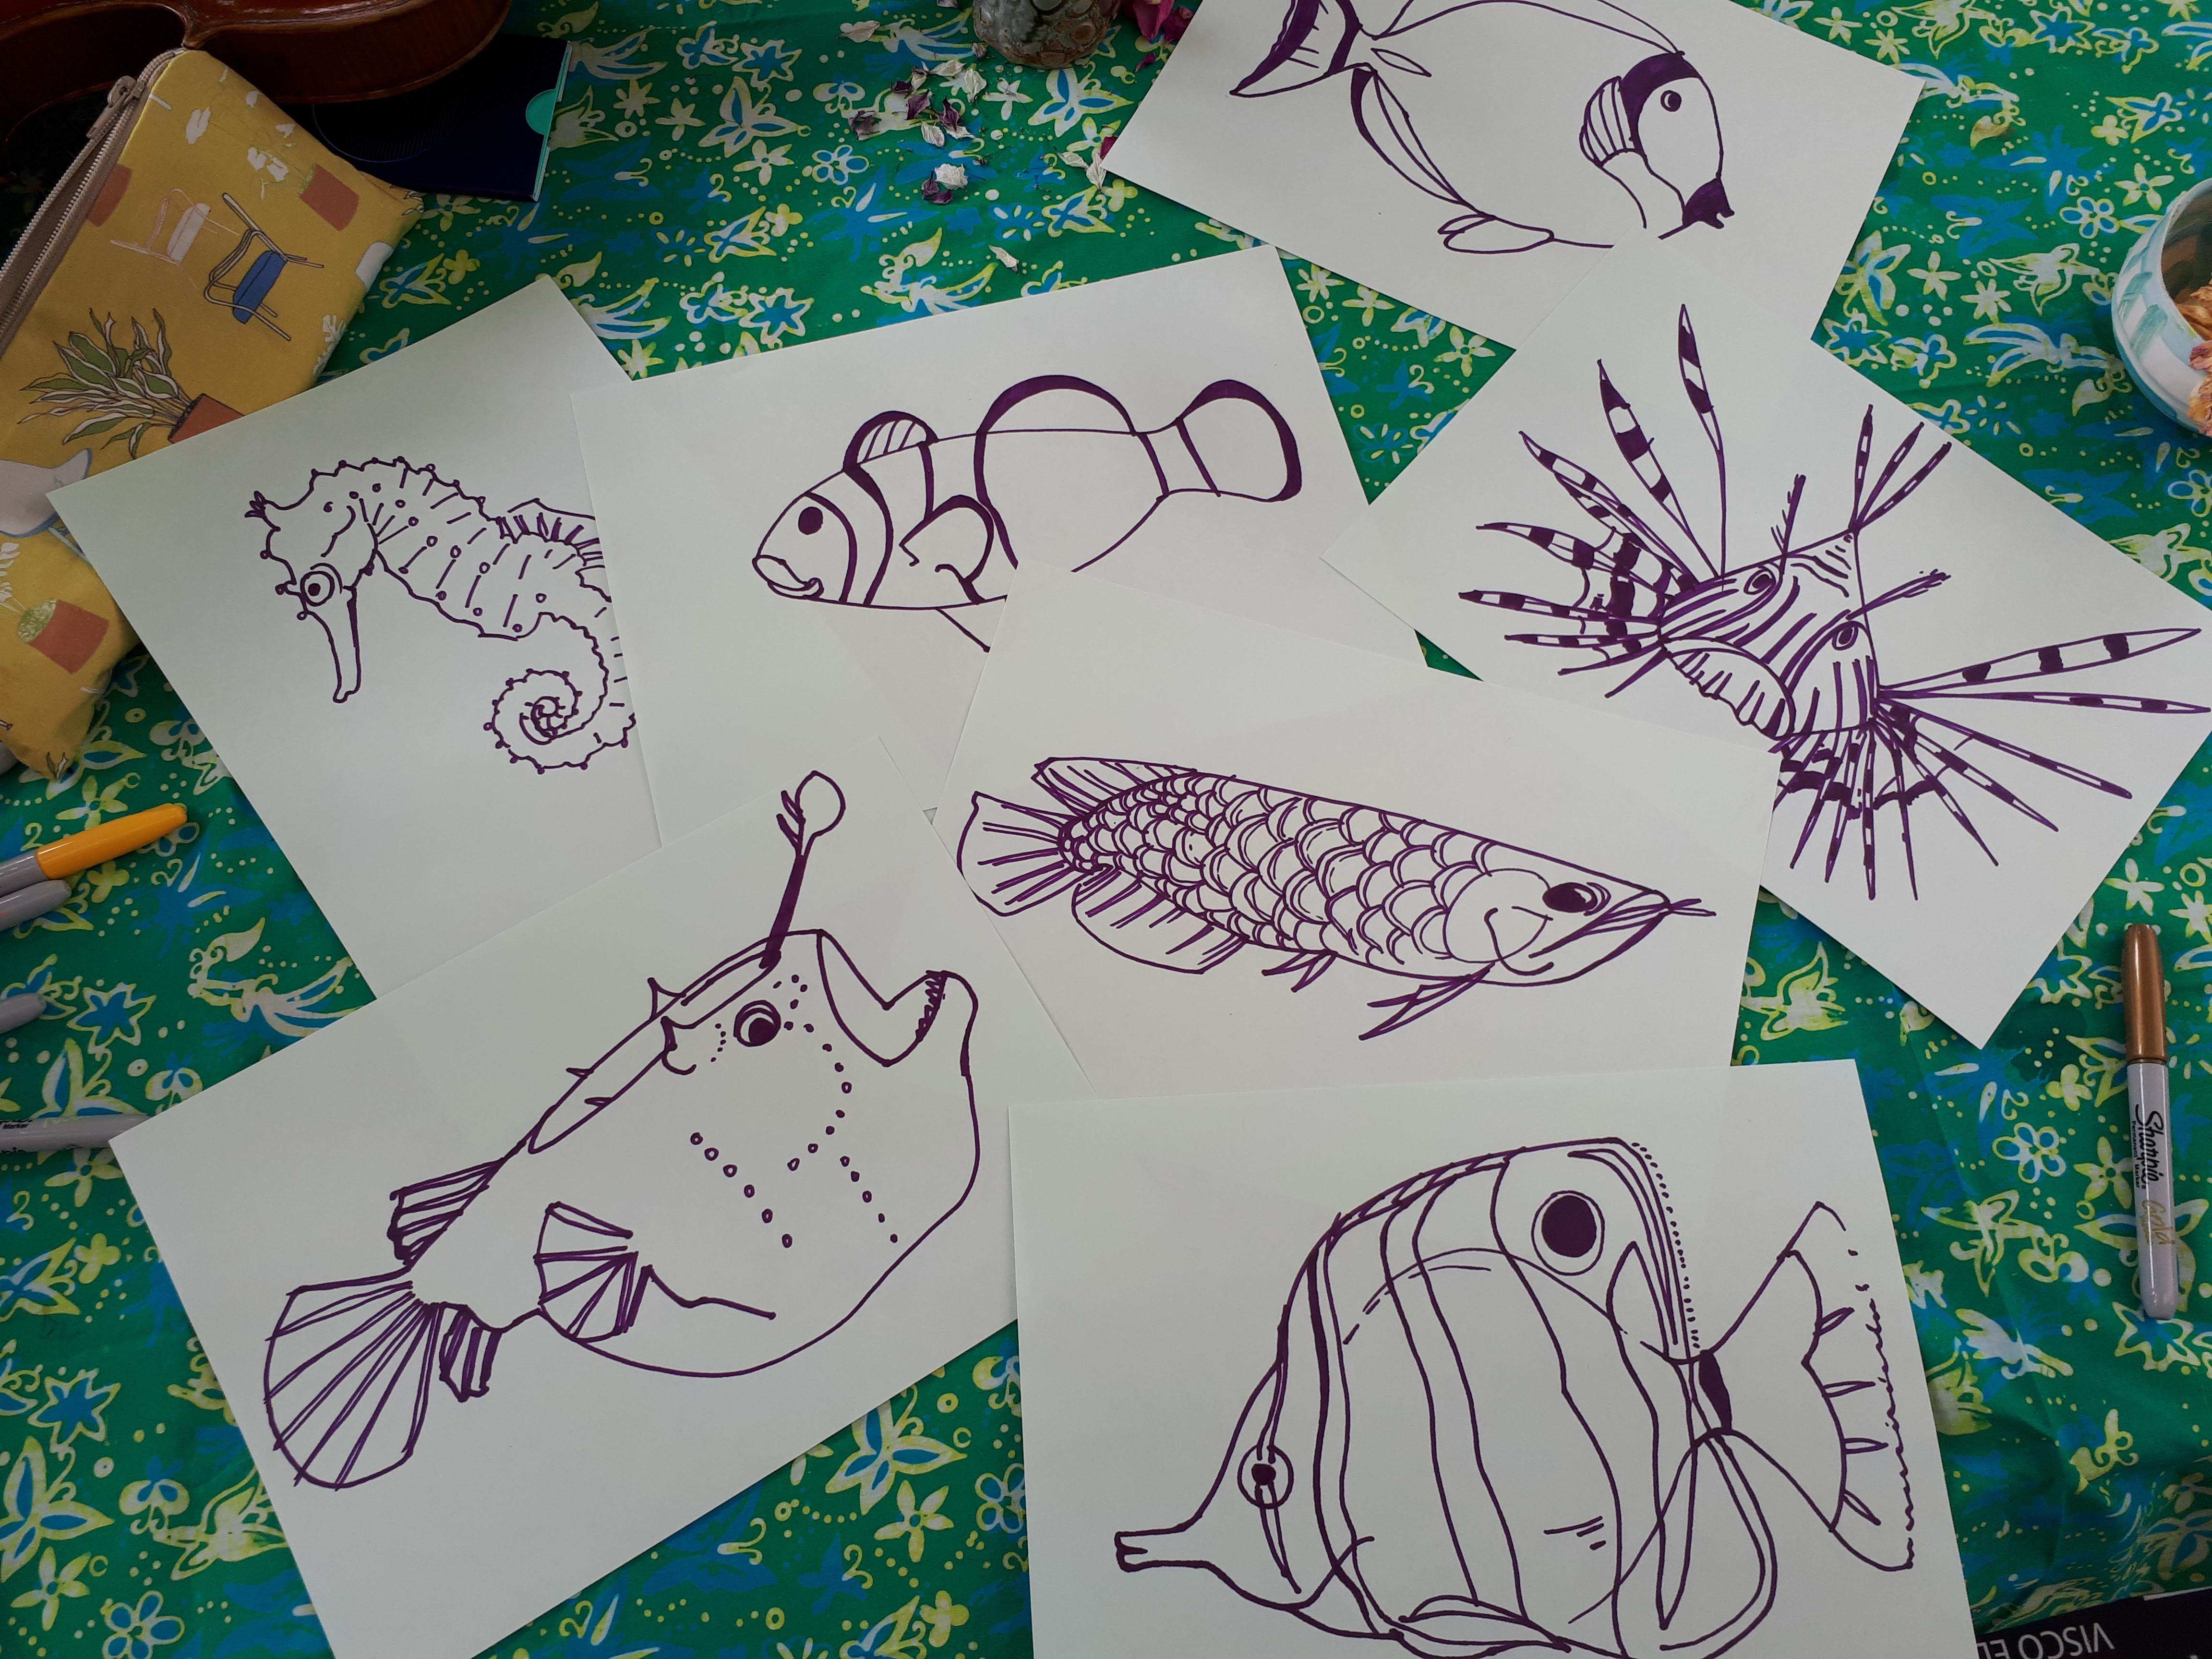 Completed fish drawings